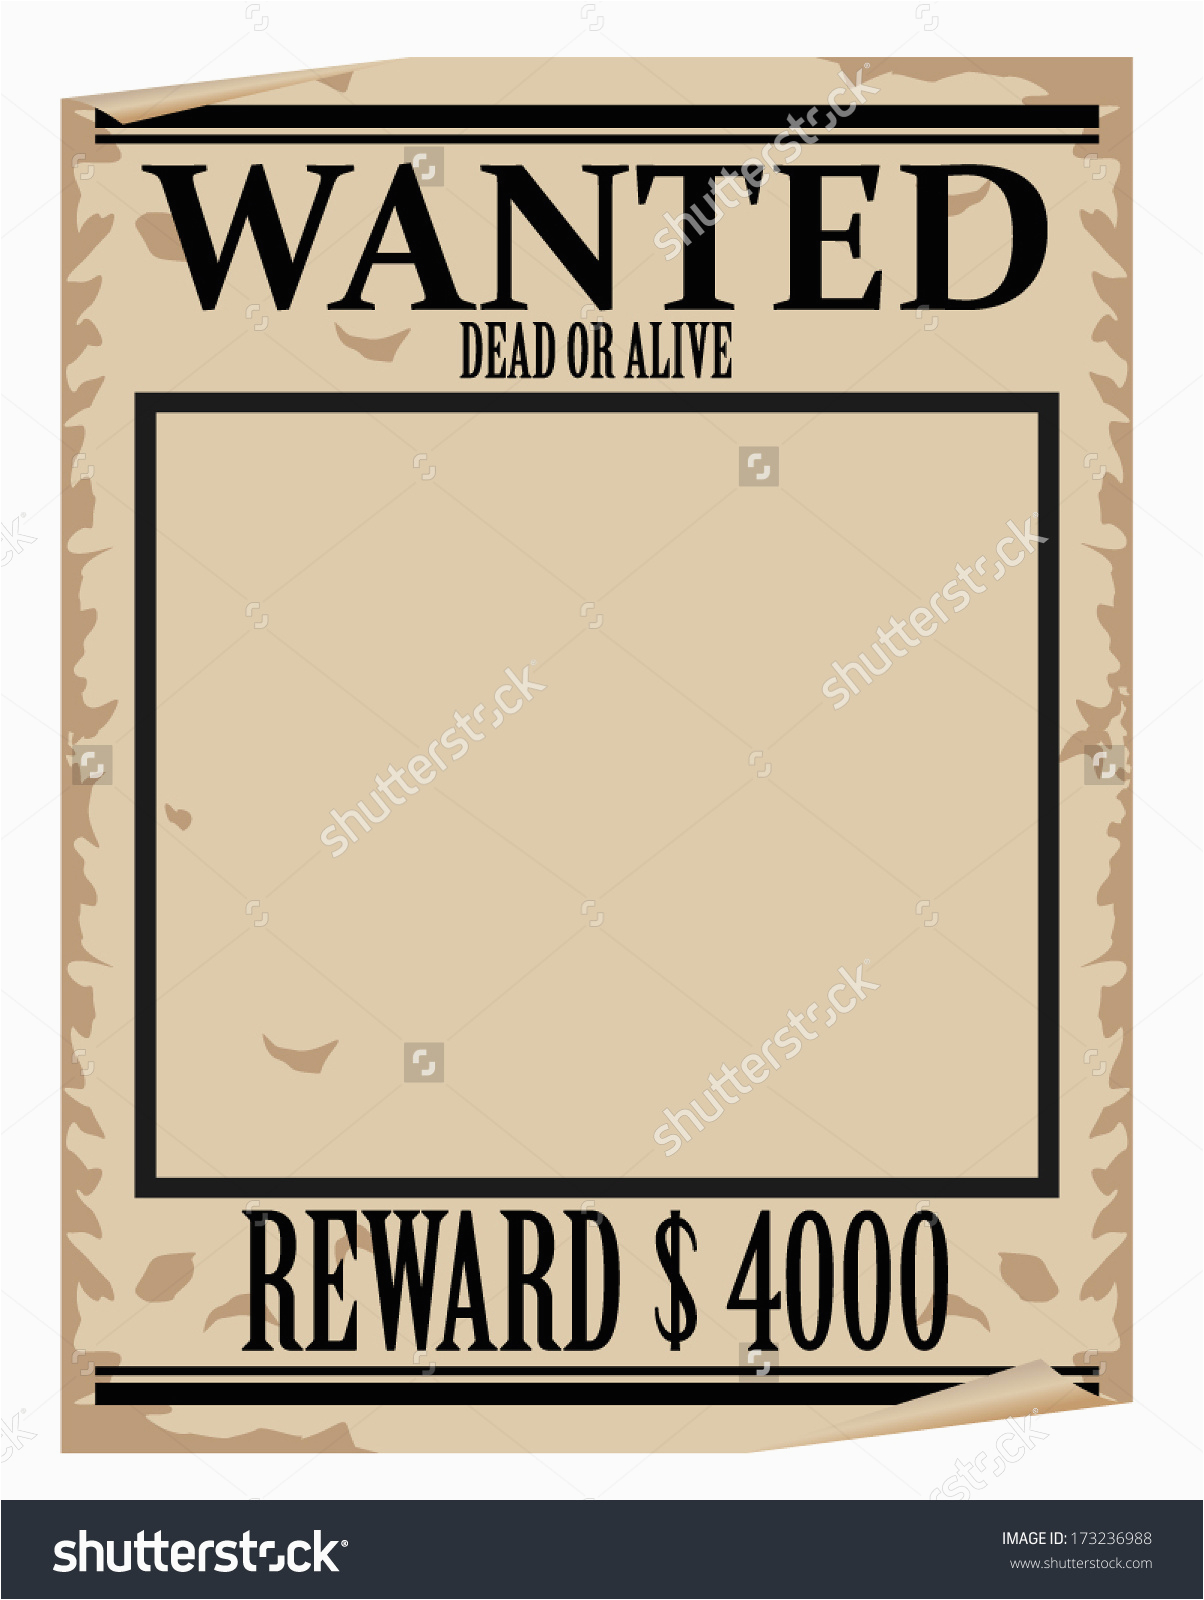 wanted invitation portablegasgrillweber com